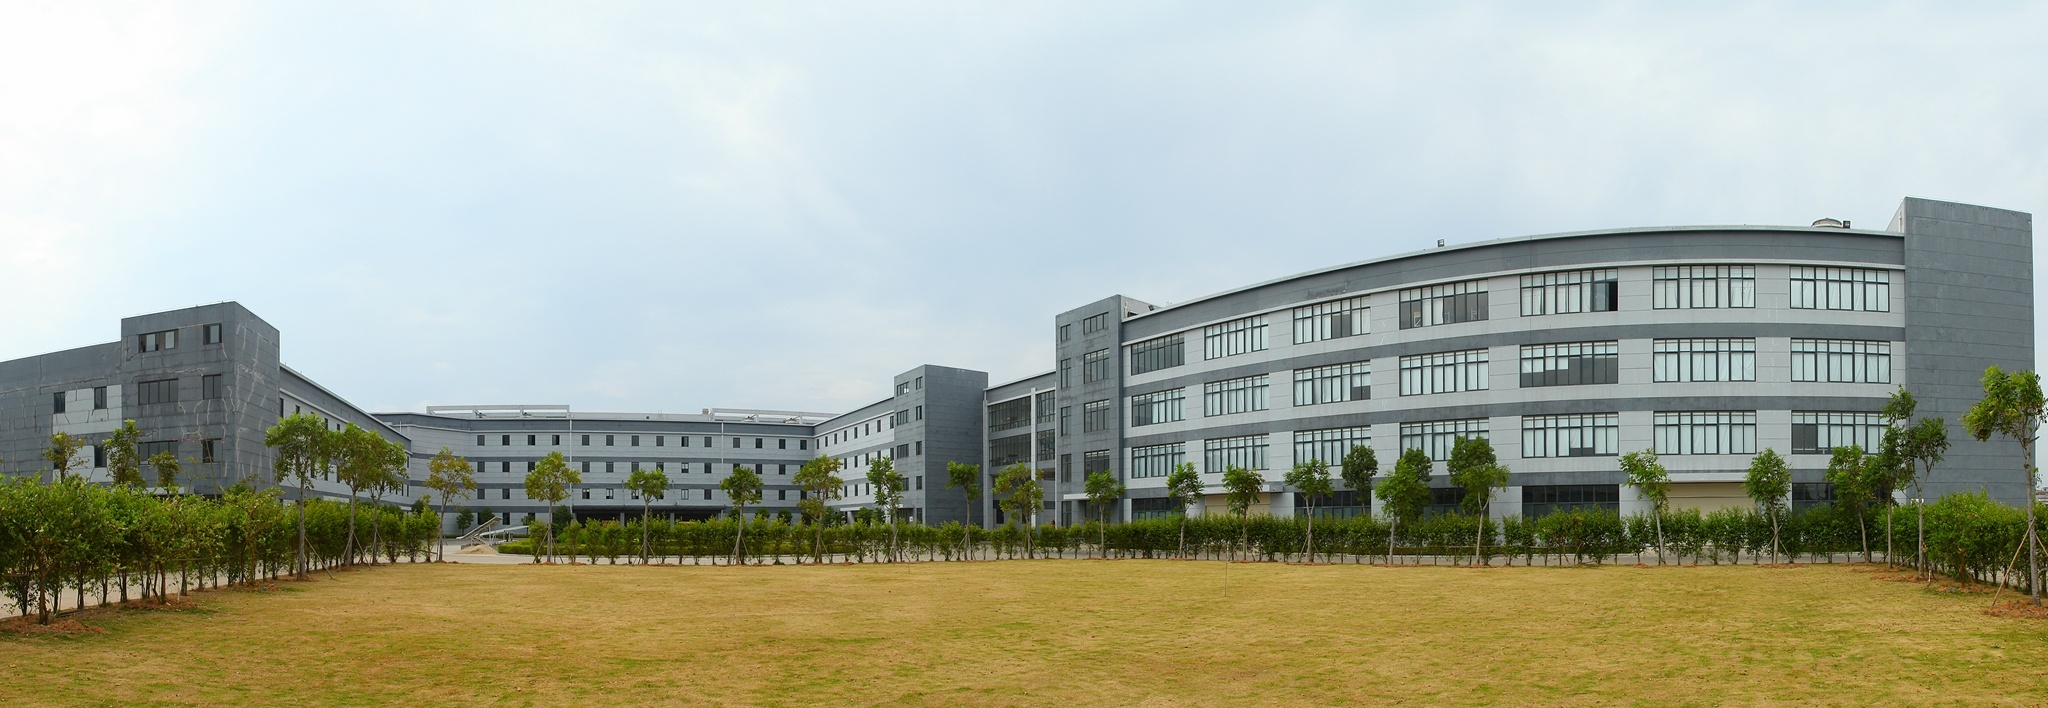 Clenergy Manufacturing Factory at the Headquarters